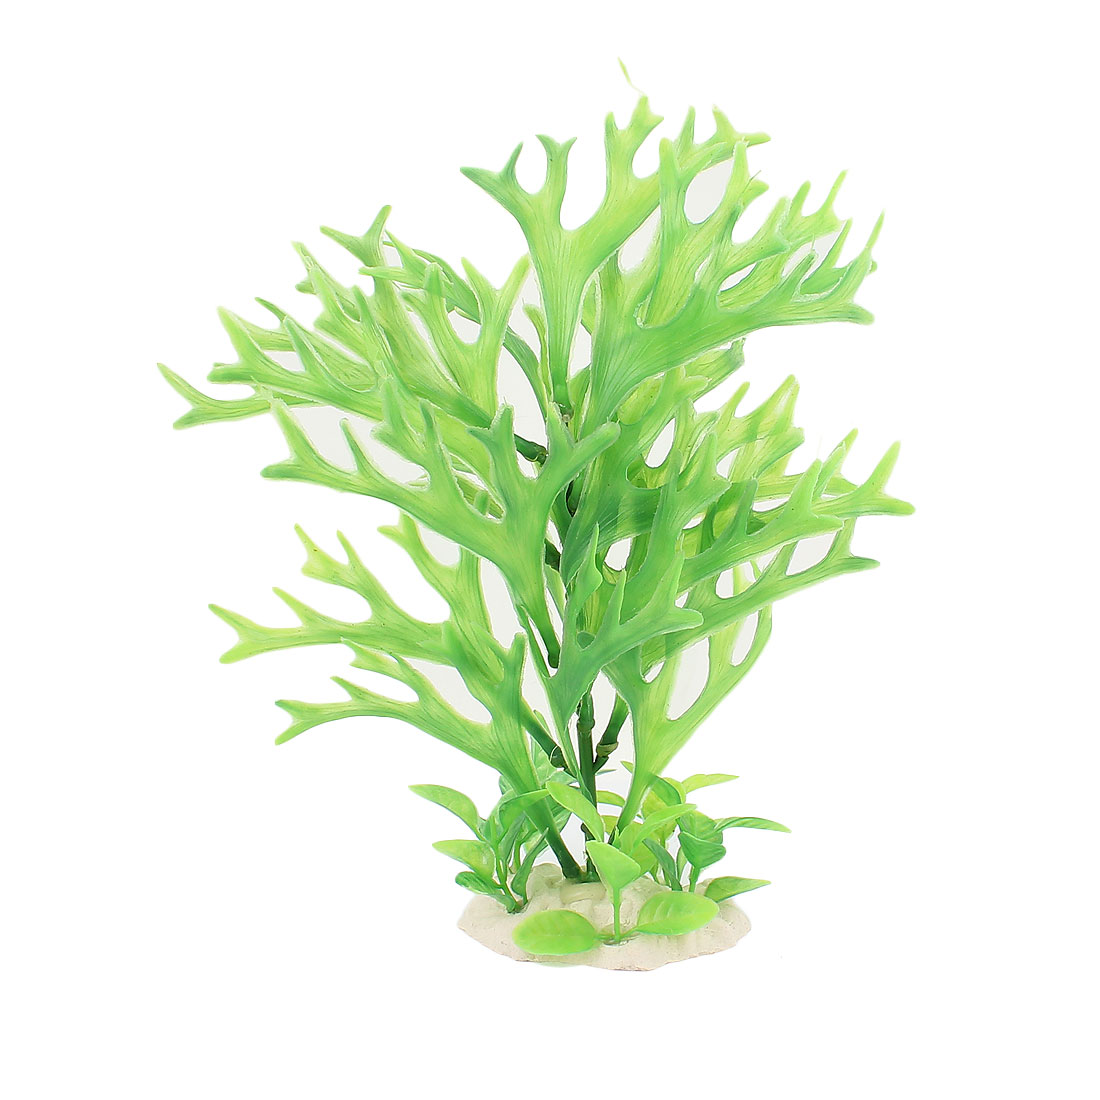 Plastic Landscape Aquascaping Underwater Grass Aquarium Plant Decor Green